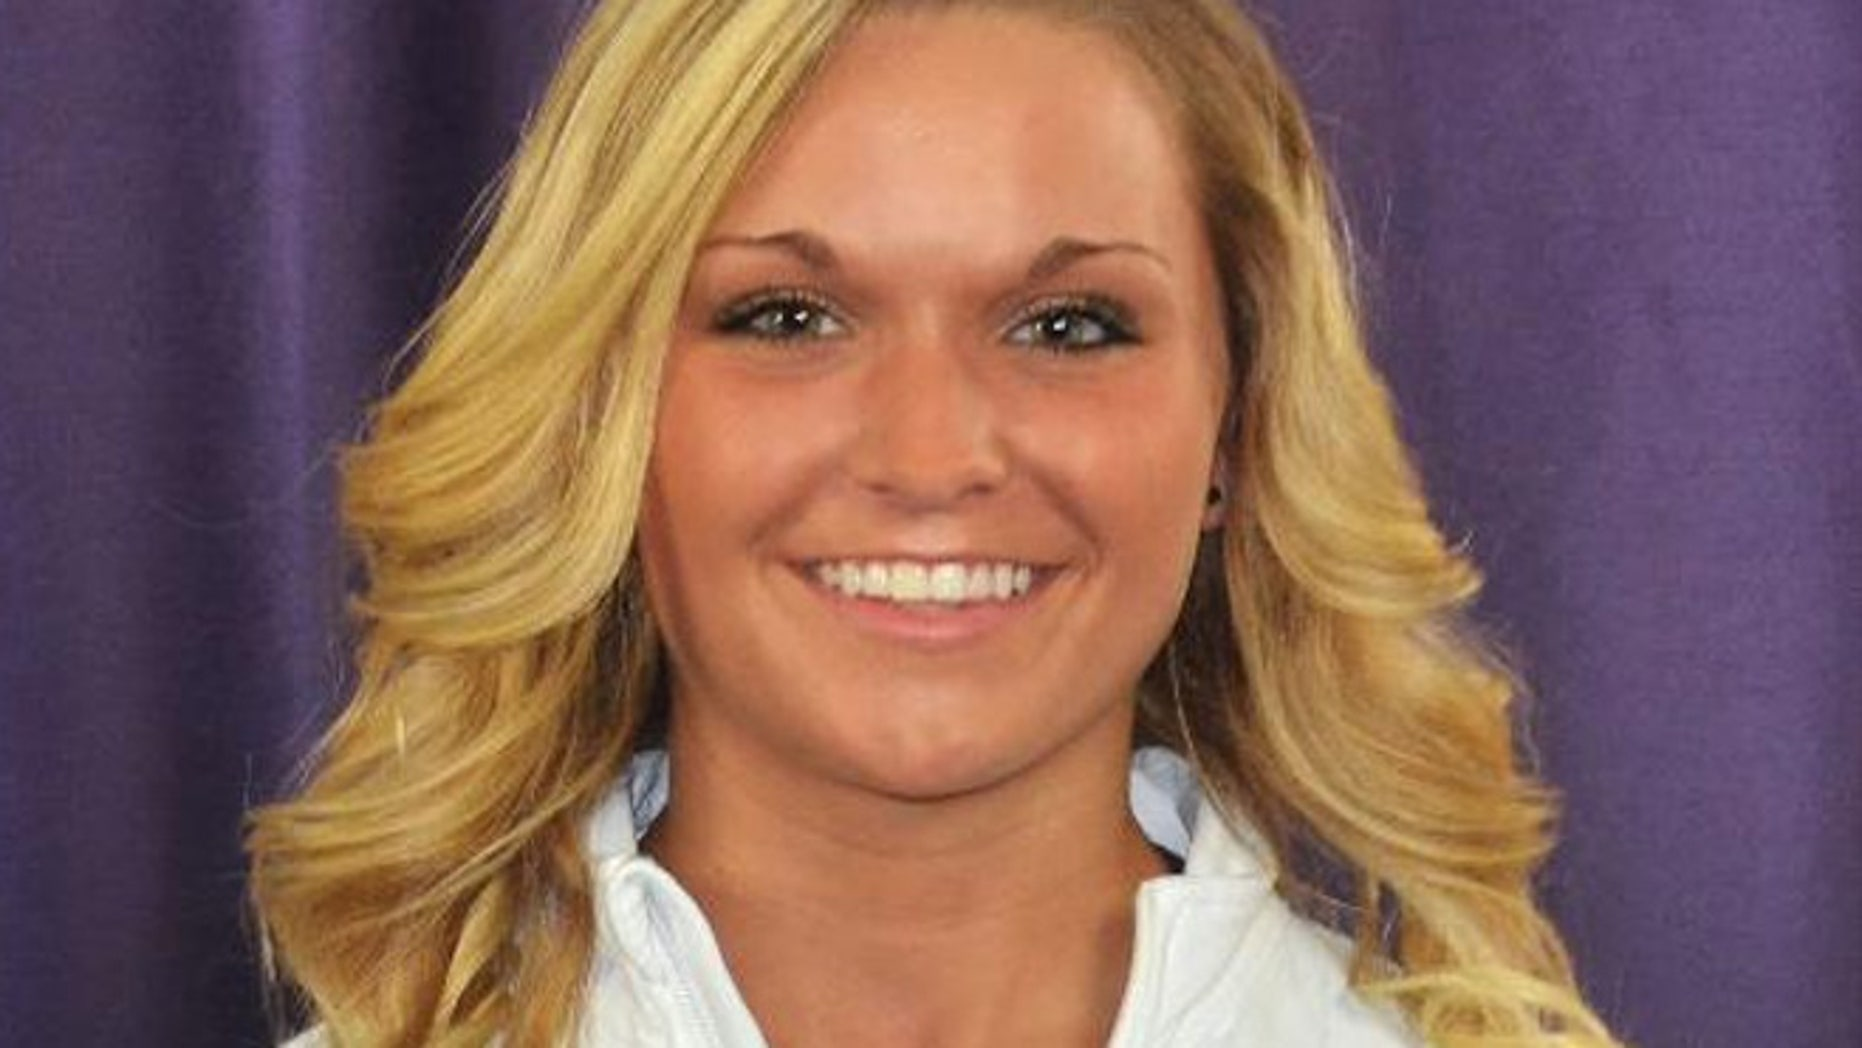 Police released the autopsy results for Brooke Baures of Chetek, a senior and standout gymnast at Winona State University in Minnesota.